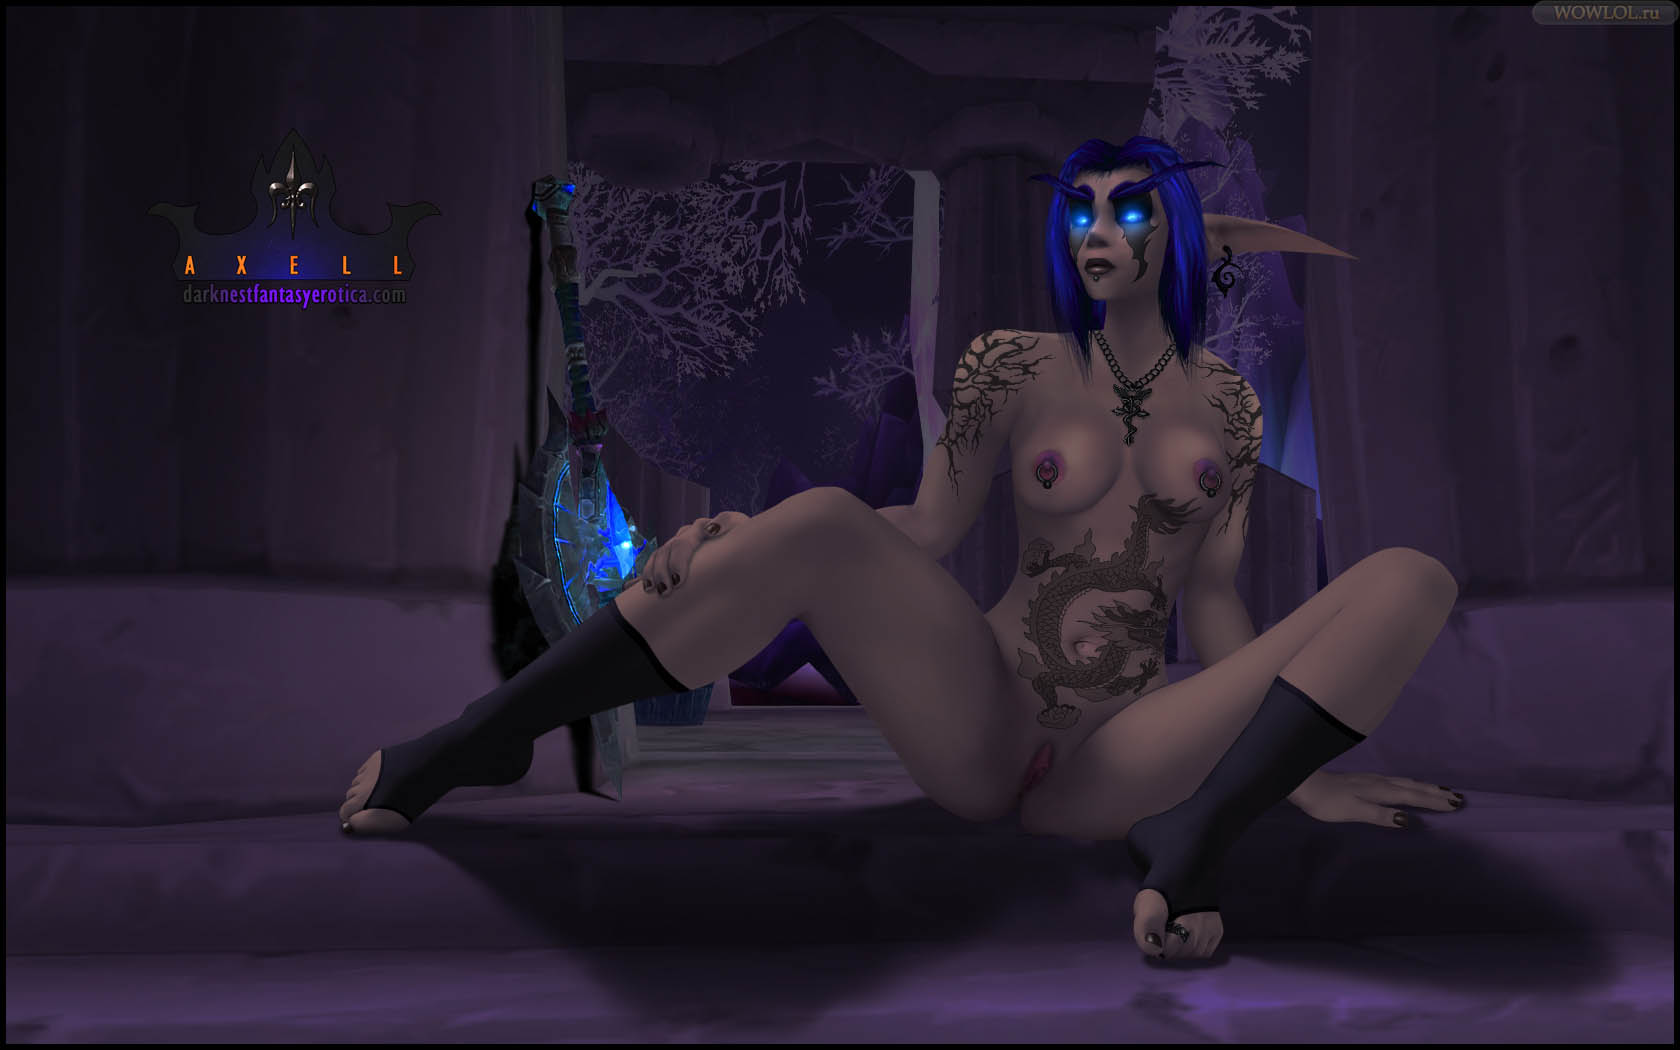 World of warcraft sex nude patch worgen  sex movies